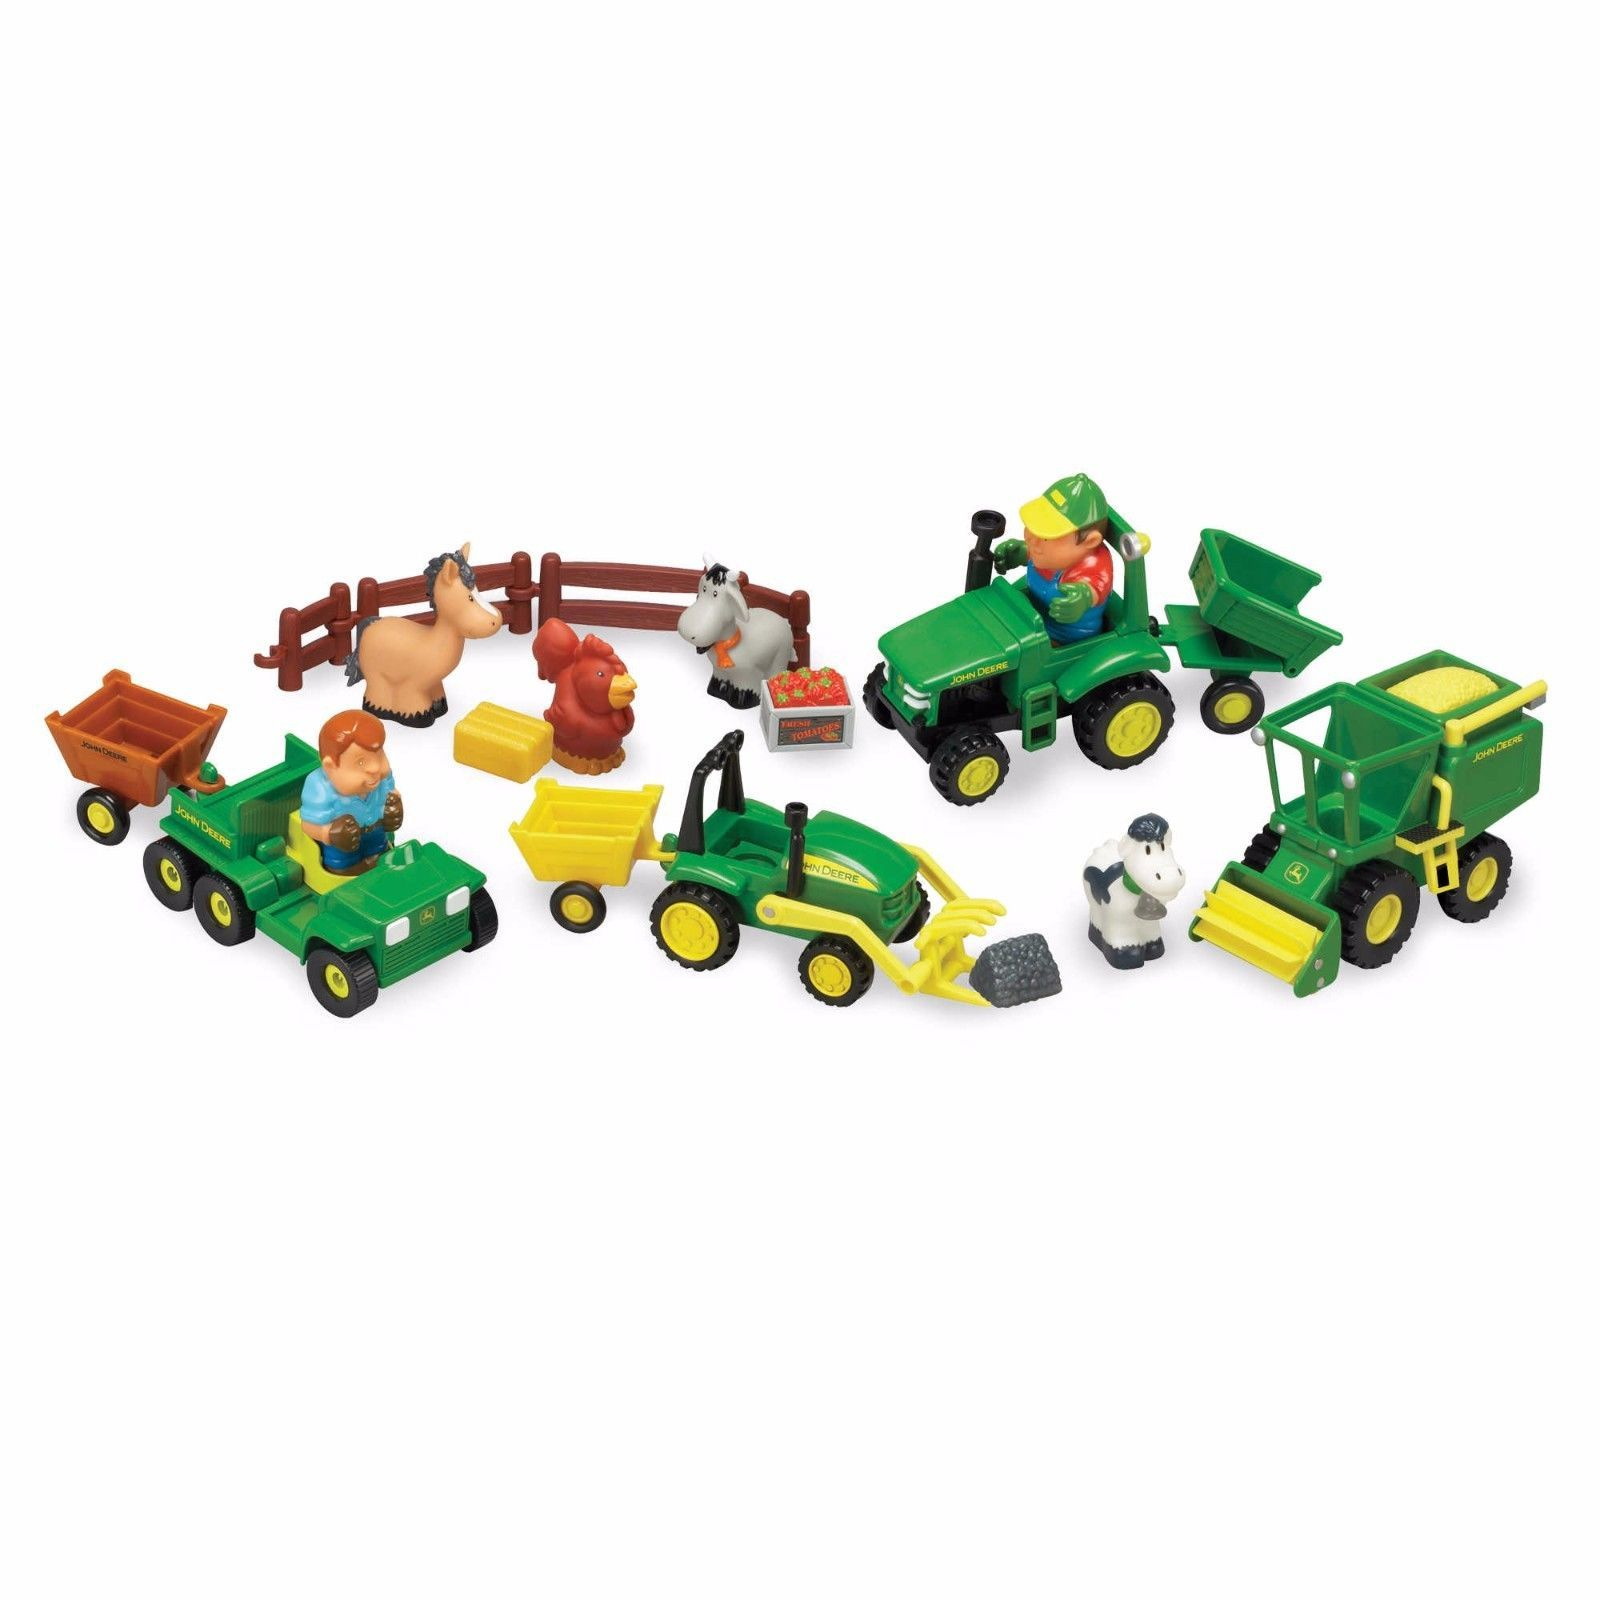 John Deere Toys For Toddlers Boys Girls Farm Creative Play Set